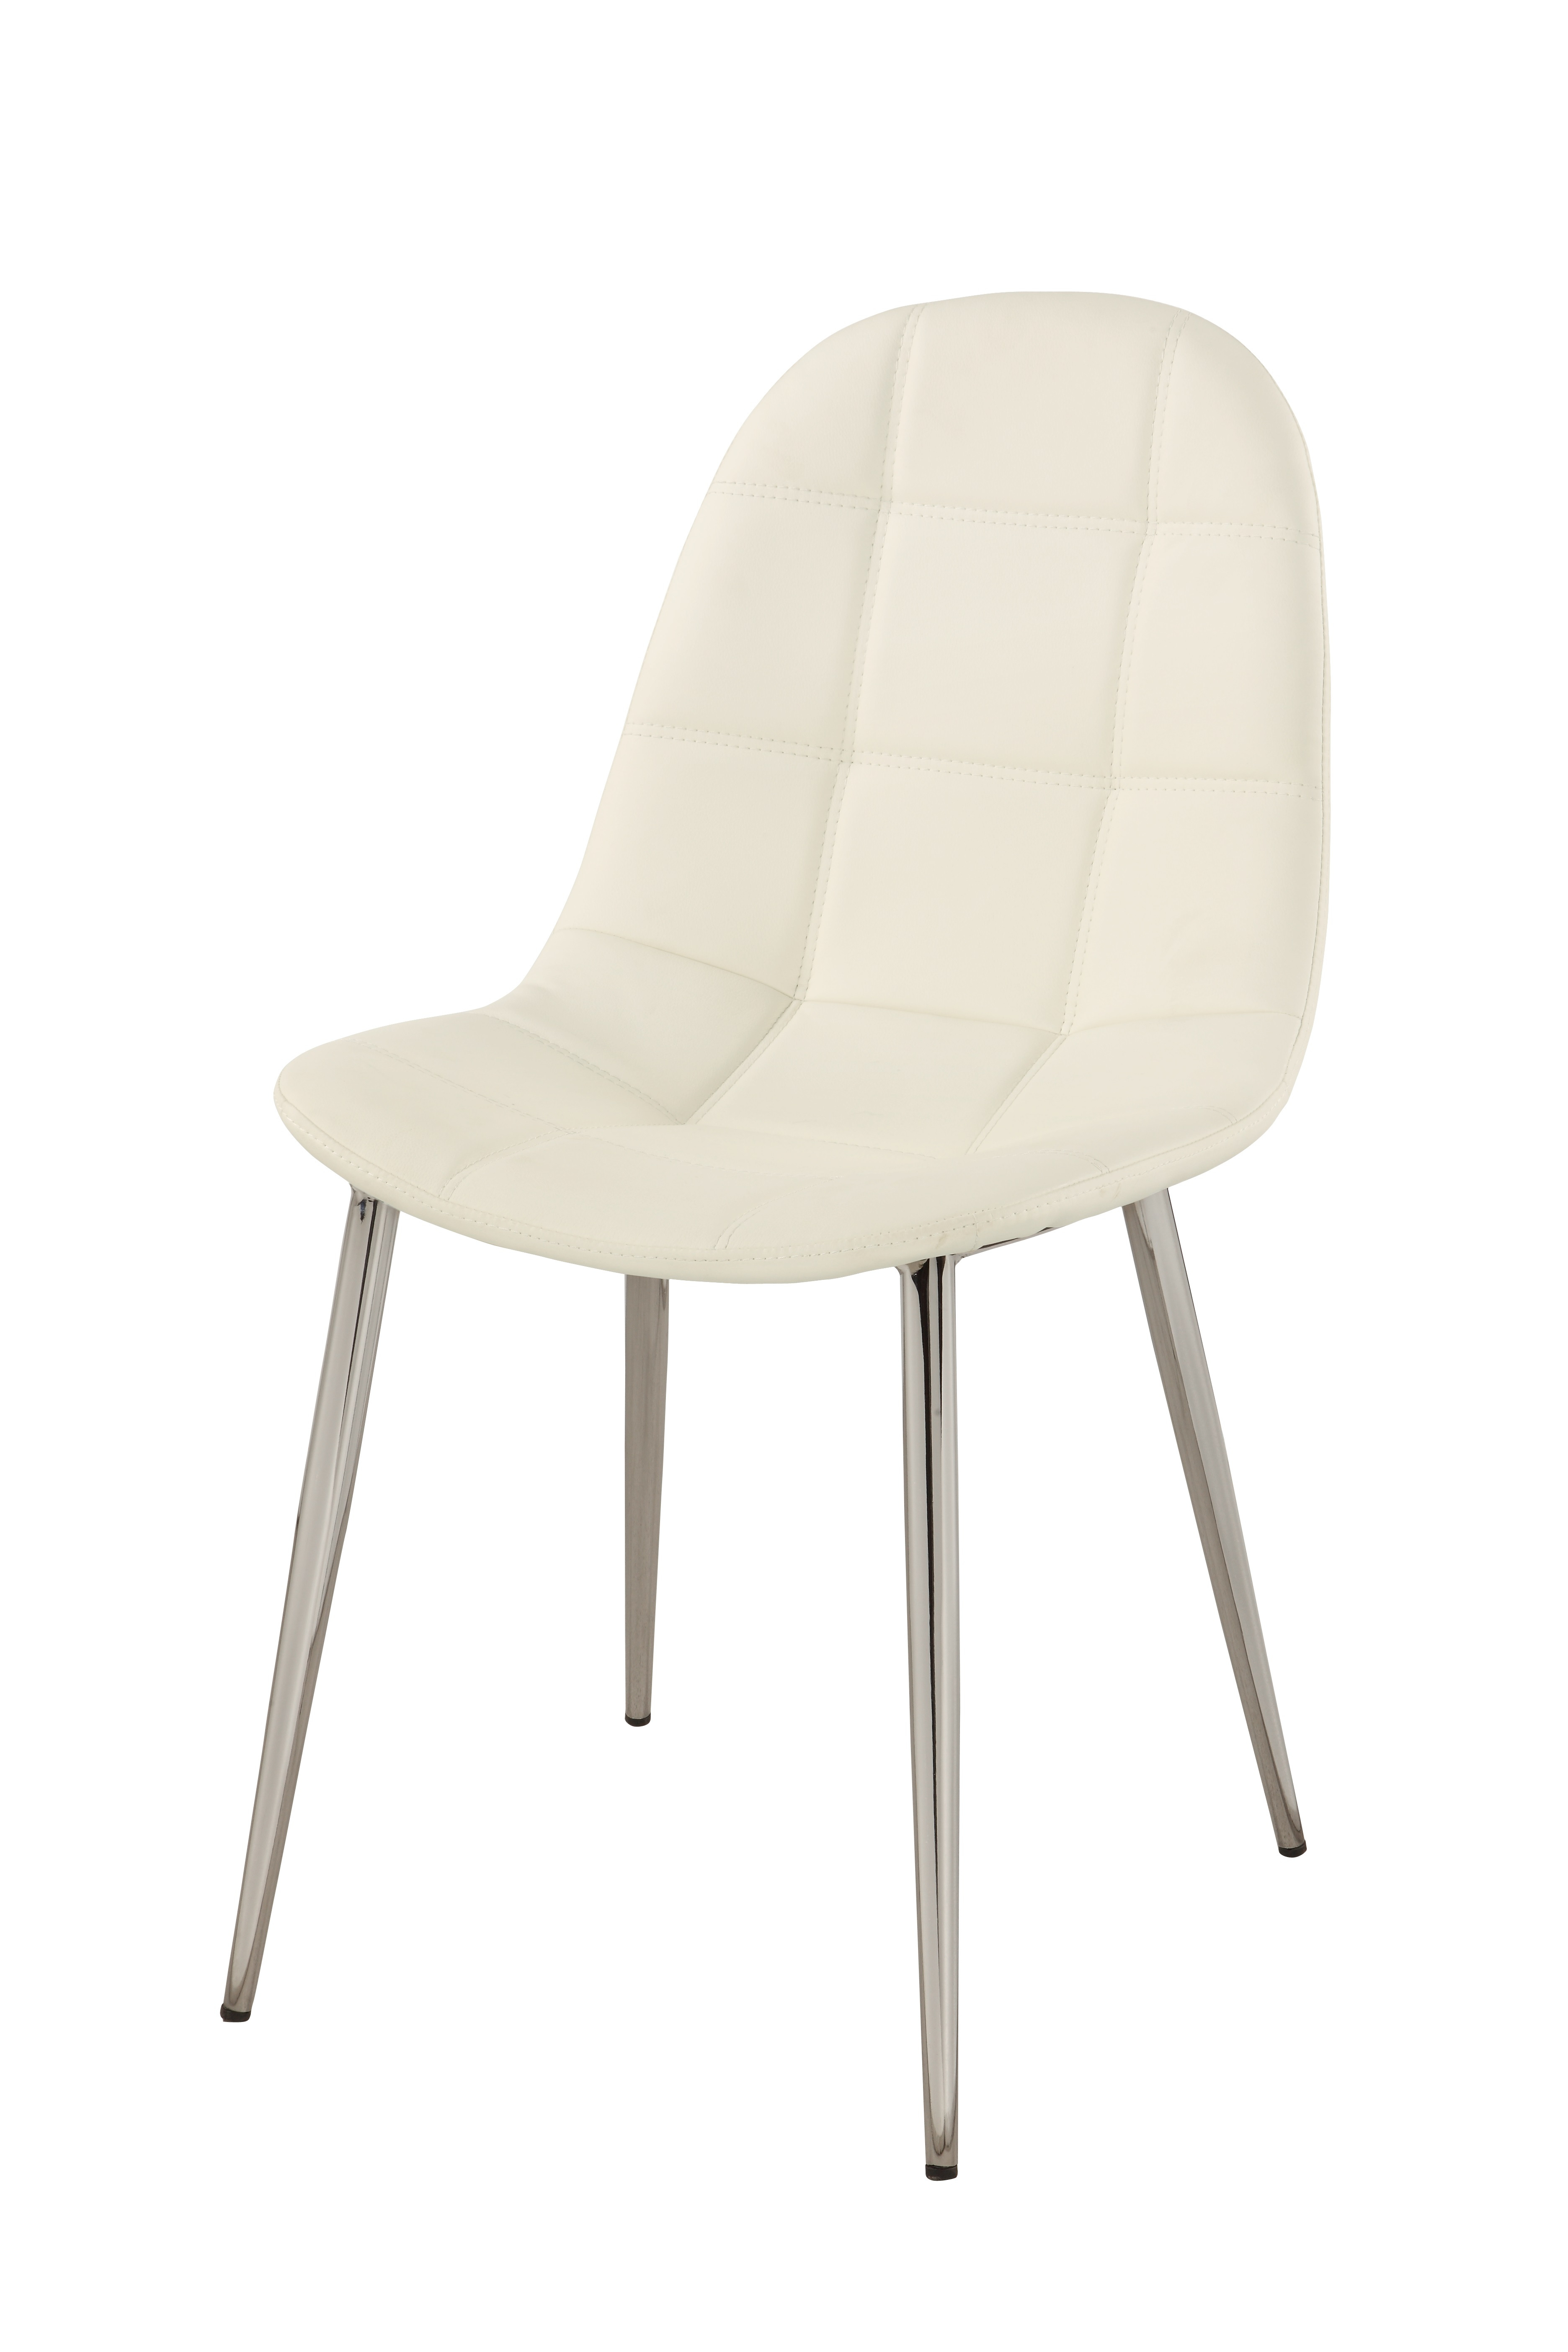 Contemporary White Upholstered Side Chair with Chrome Legs  : chdonna padded seat luxury chair from www.primeclassicdesign.com size 3744 x 5616 jpeg 775kB